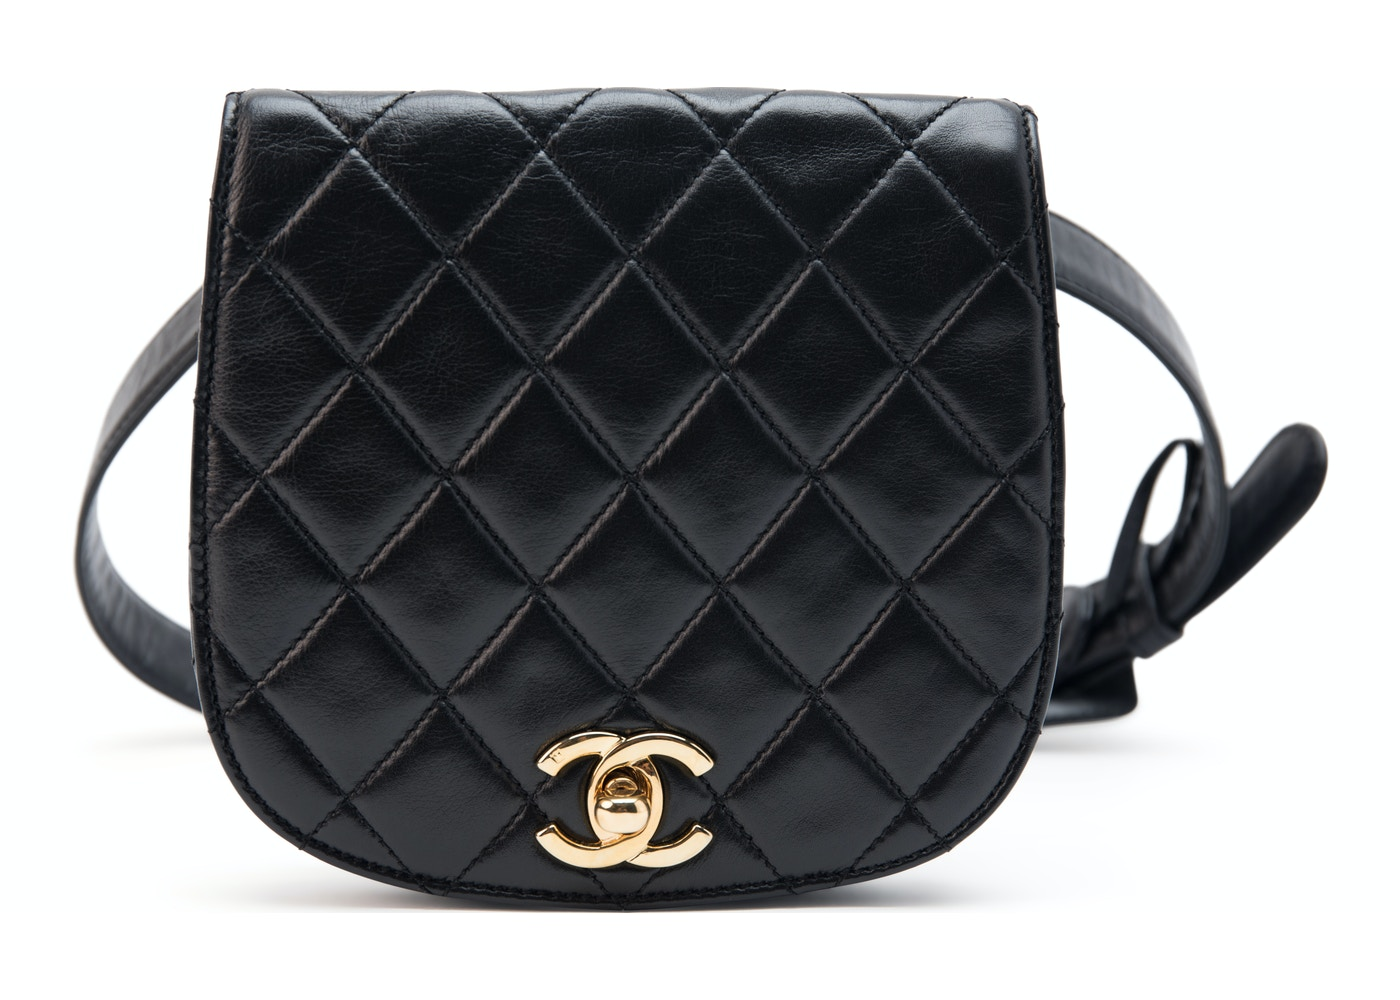 75605c3fbe65 Chanel Vintage Bum Bag Waist Belt Quilted CC Black. Quilted CC Black